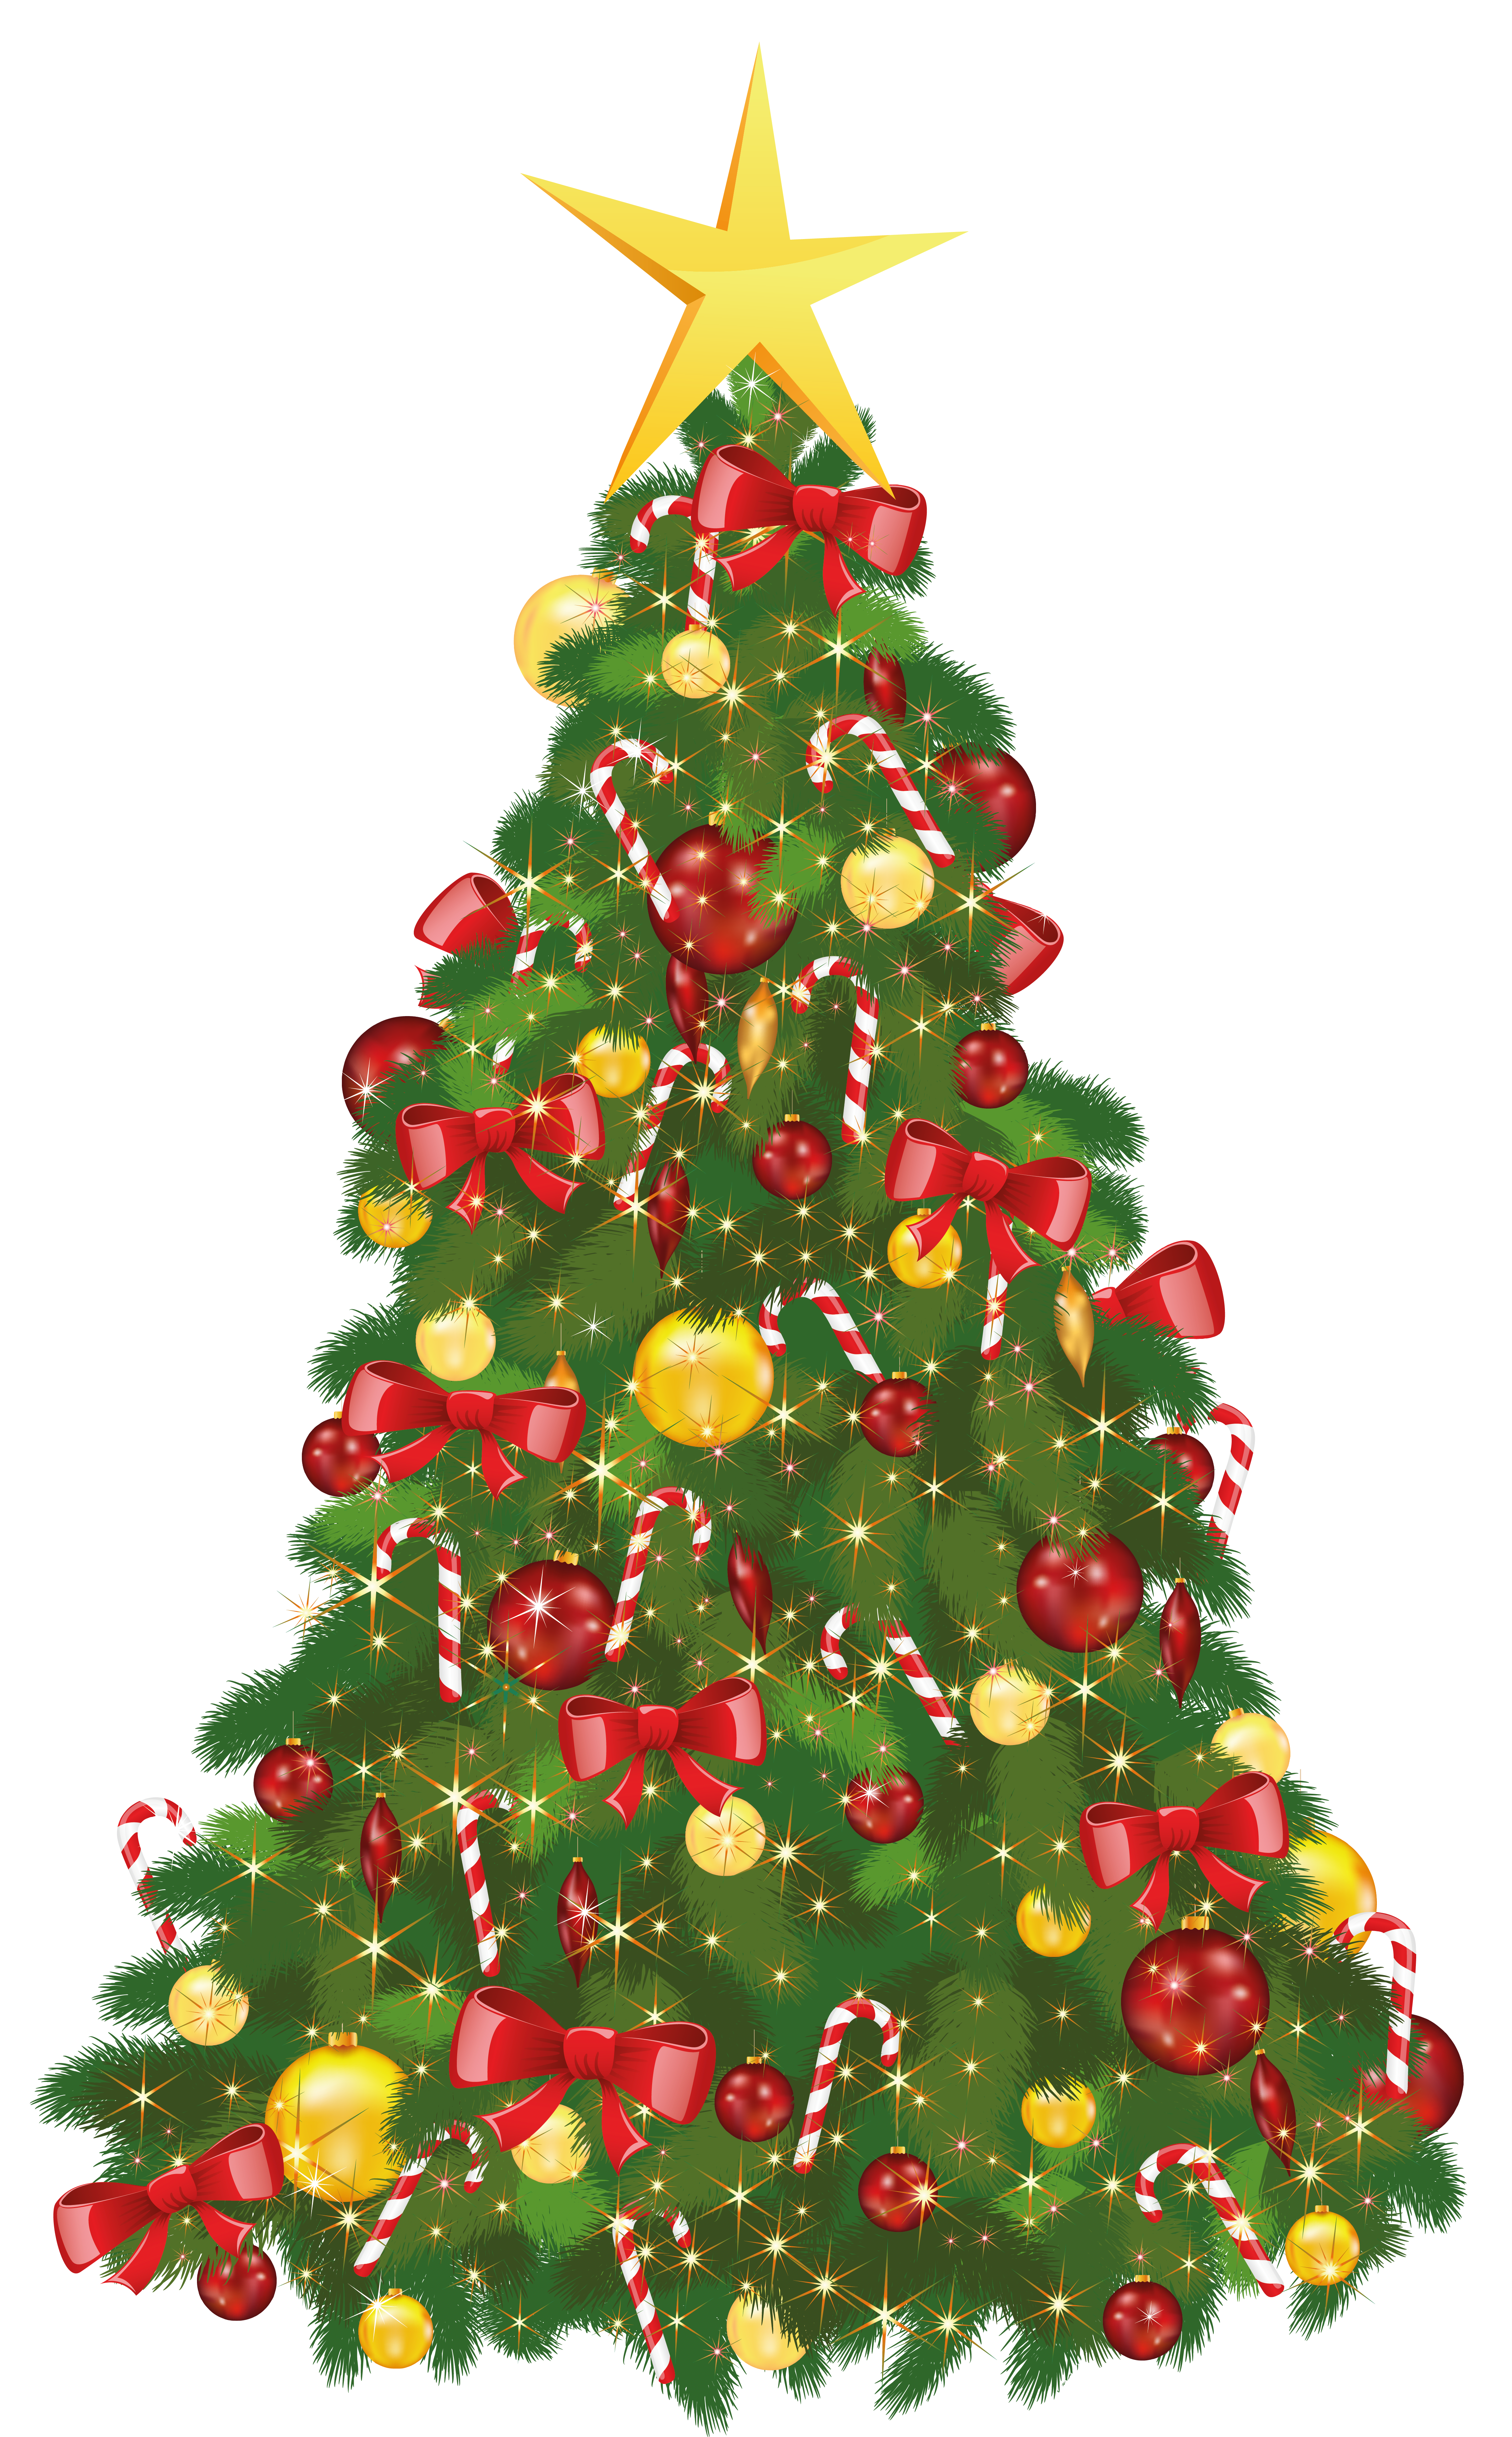 Christmas crown clipart clipart download Transparent Xmas Tree with Star   Gallery Yopriceville - High ... clipart download